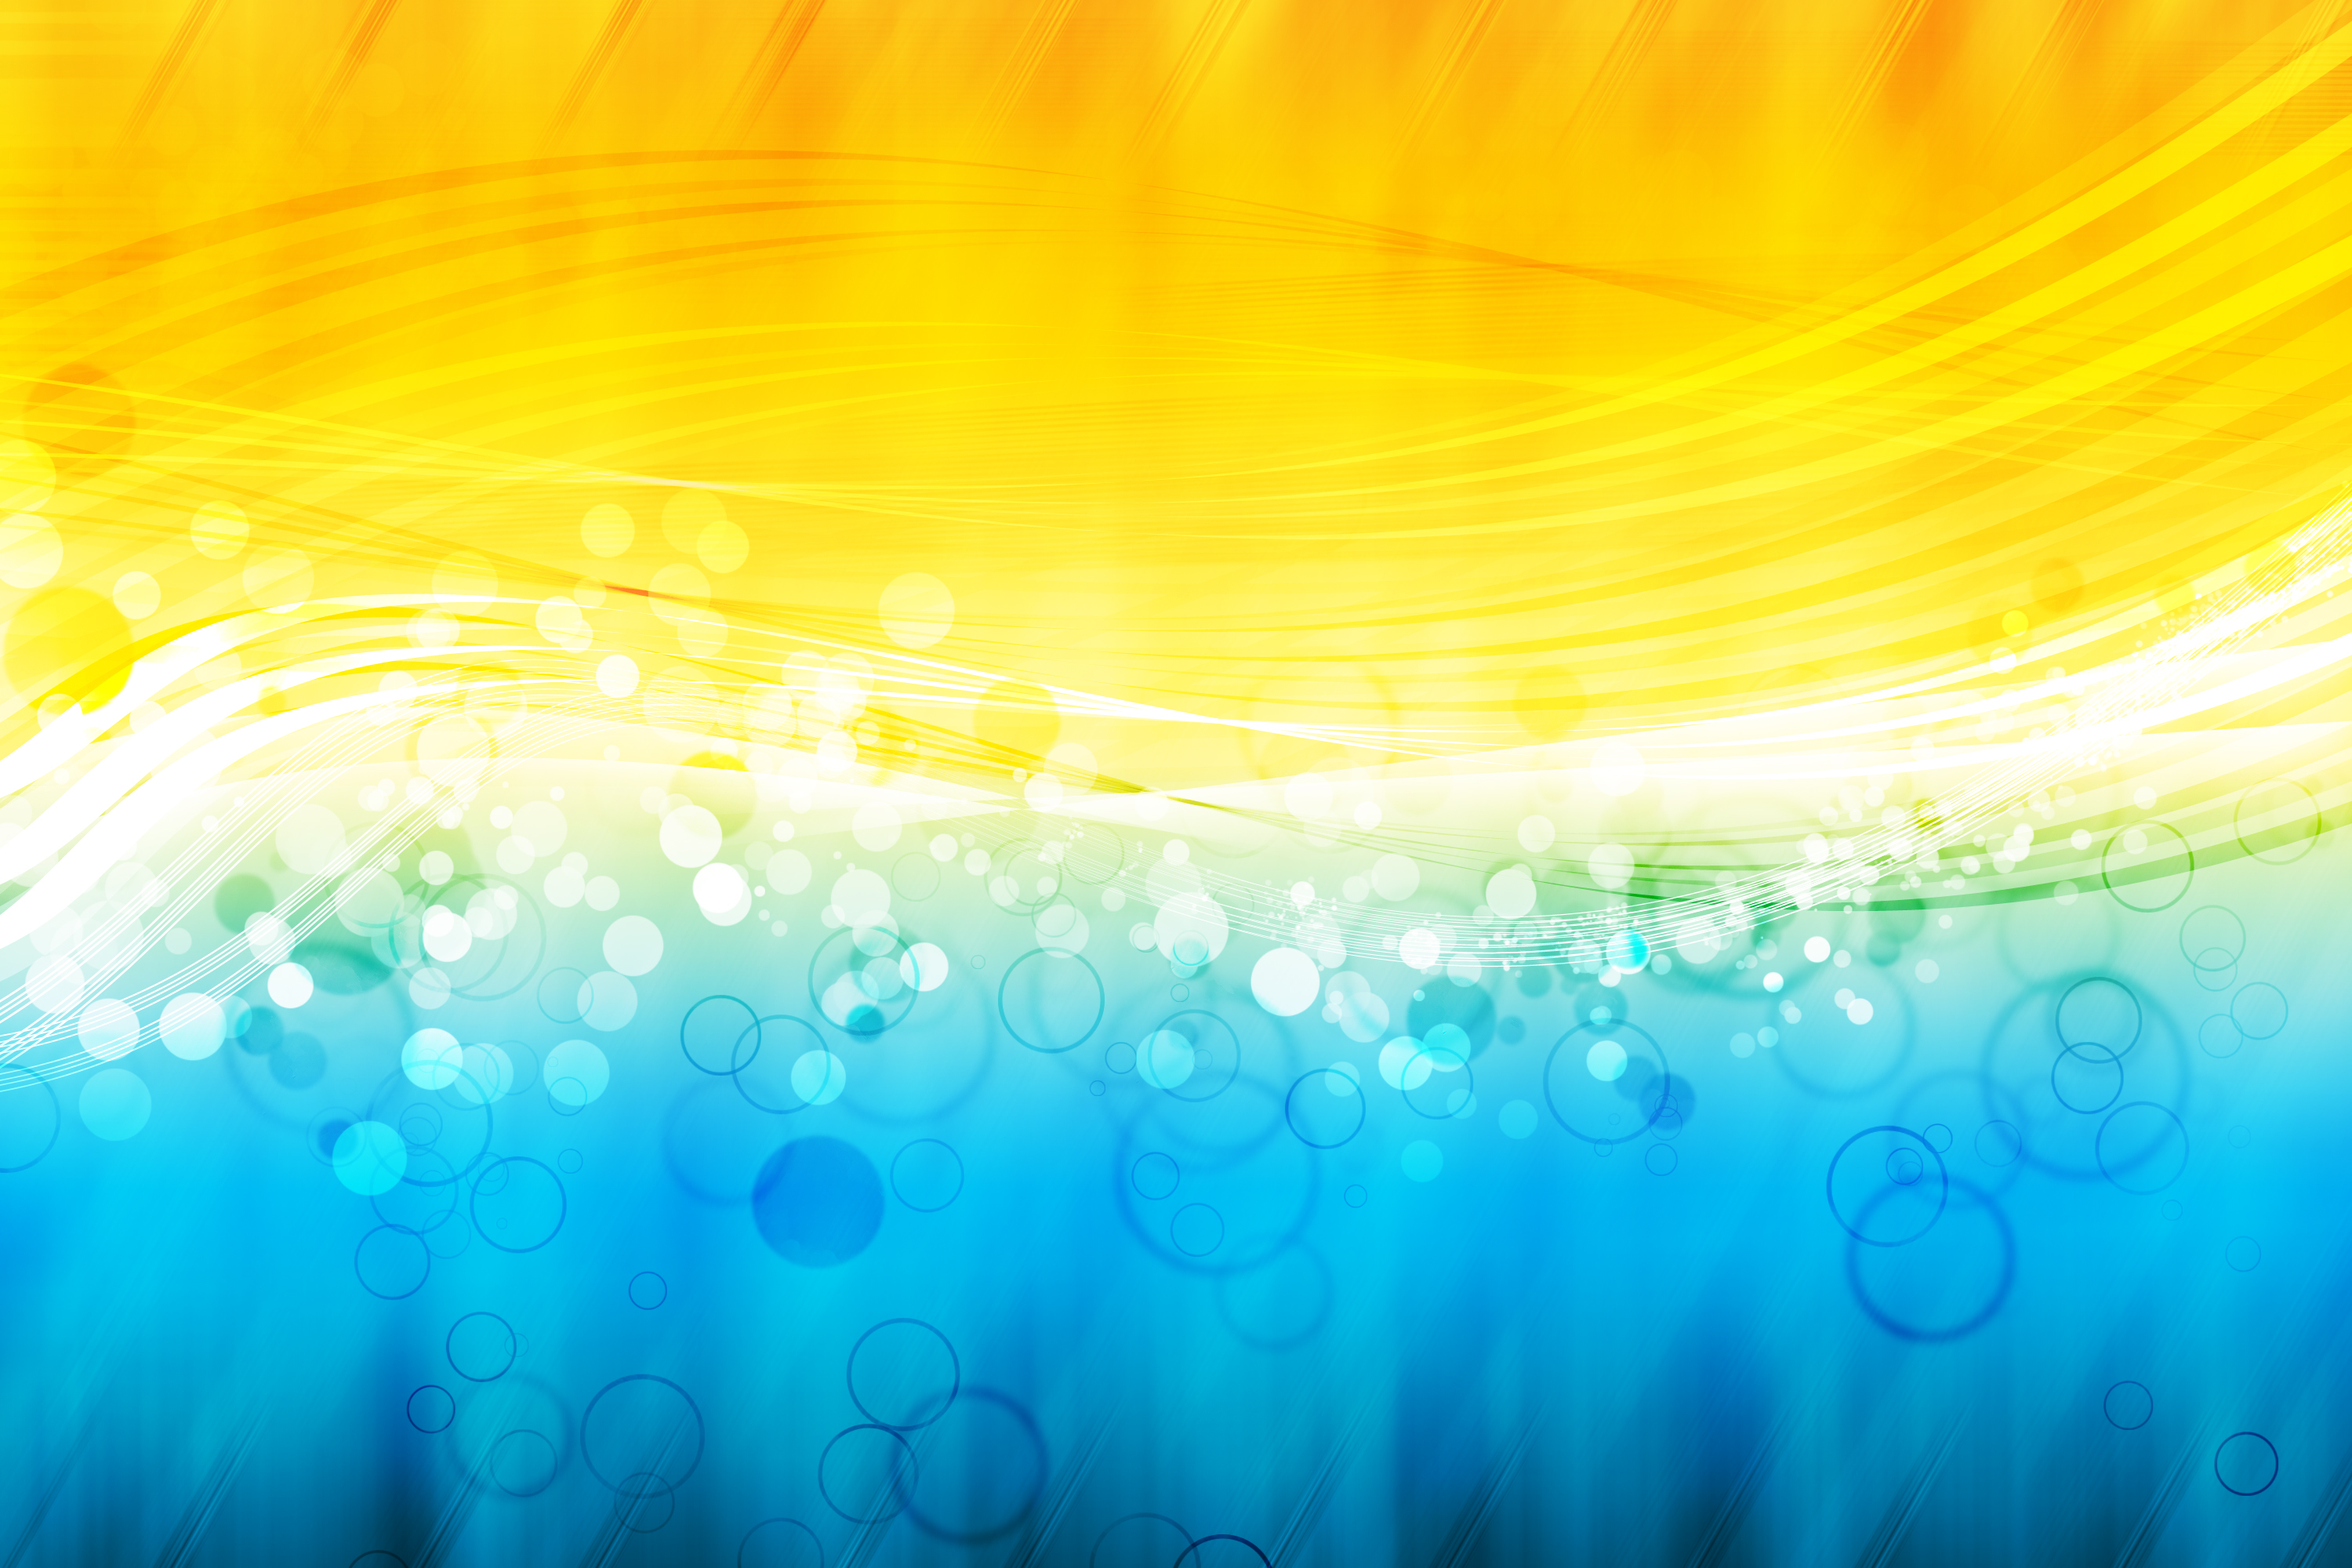 Abstract Background | HD Wallpapers Pulse